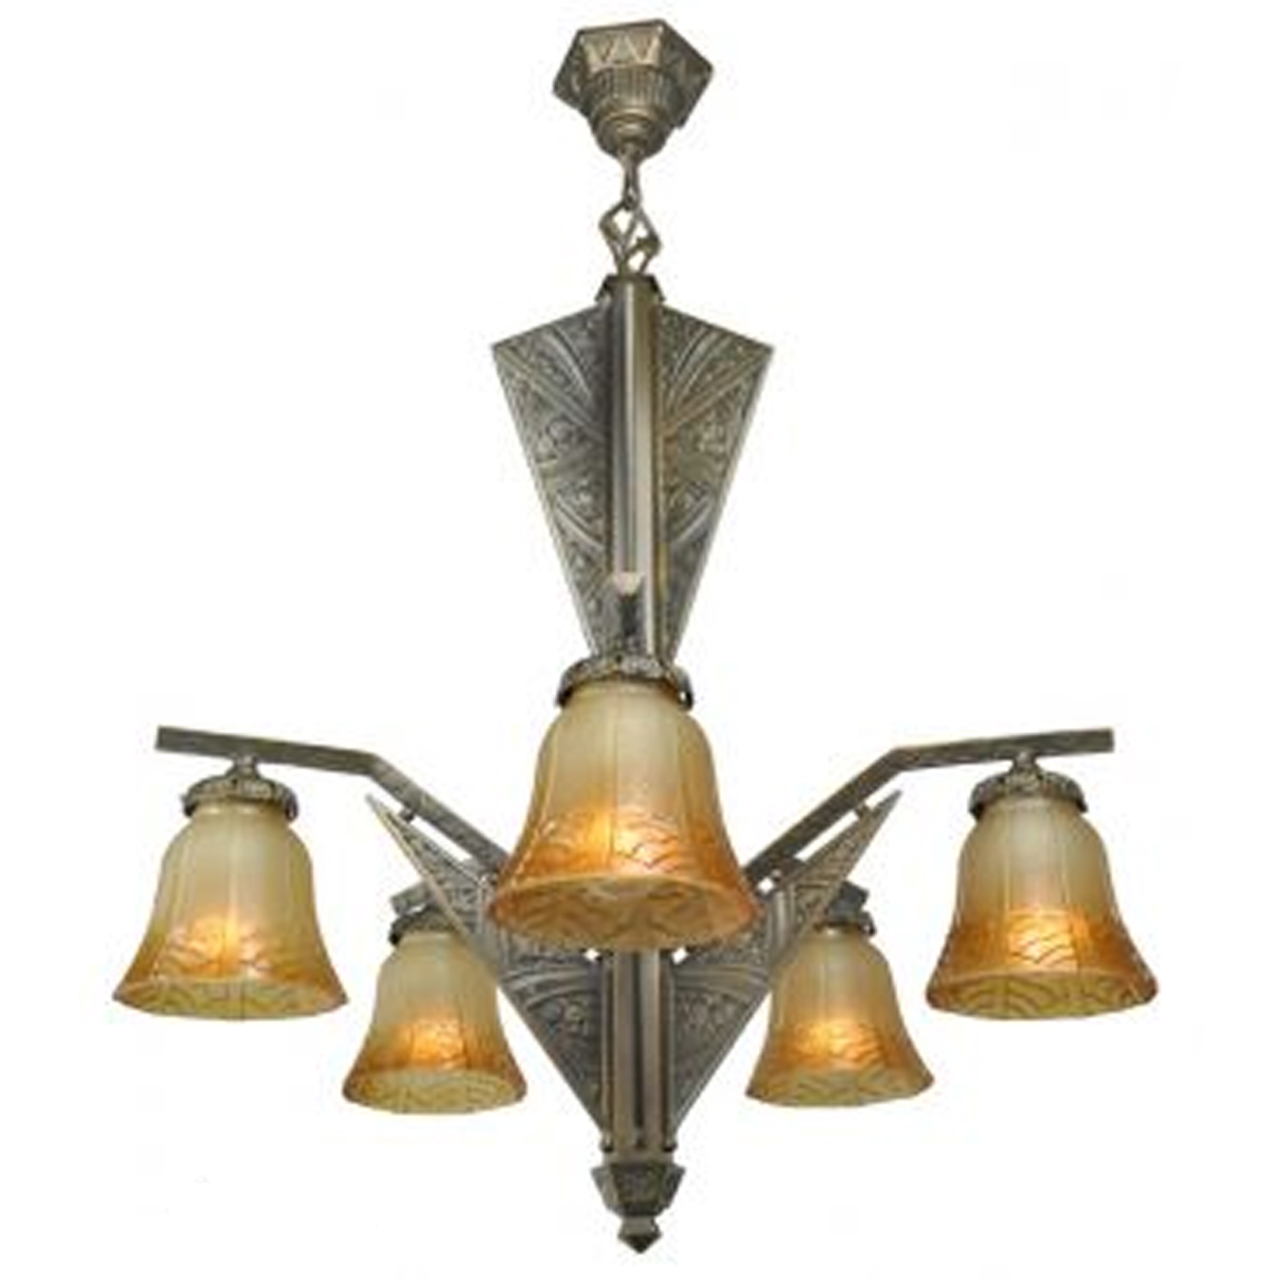 French Art Deco 6 Light Chandelier Antique Ceiling Light